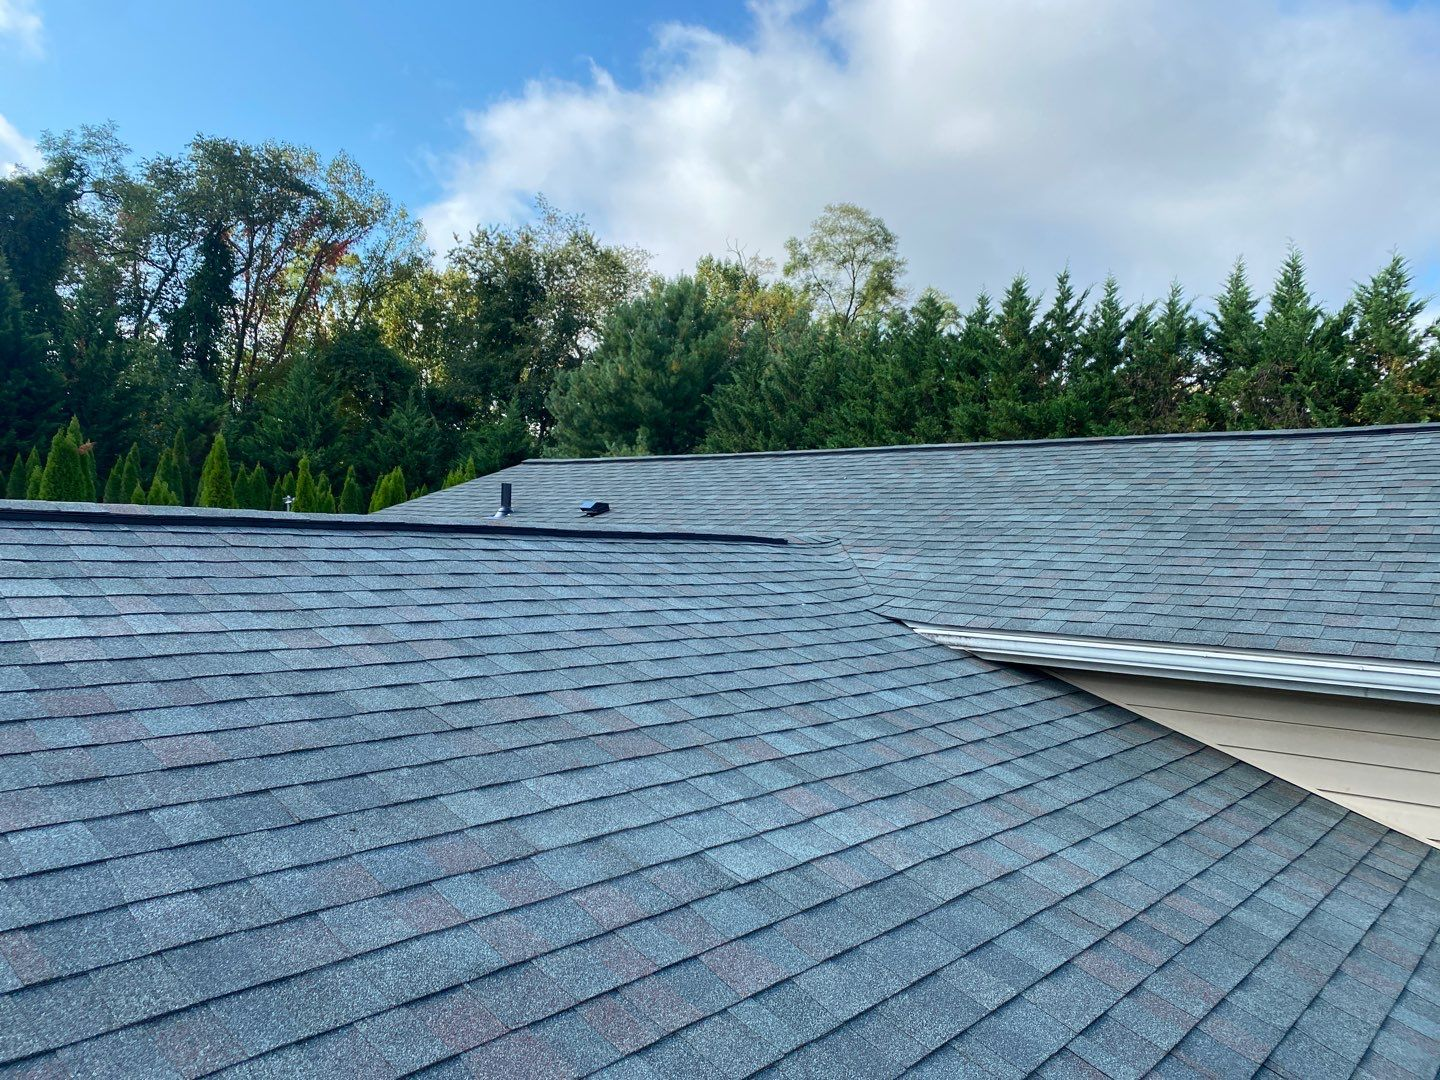 Best Roofing Shingles for Maryland Weather - Roof Right